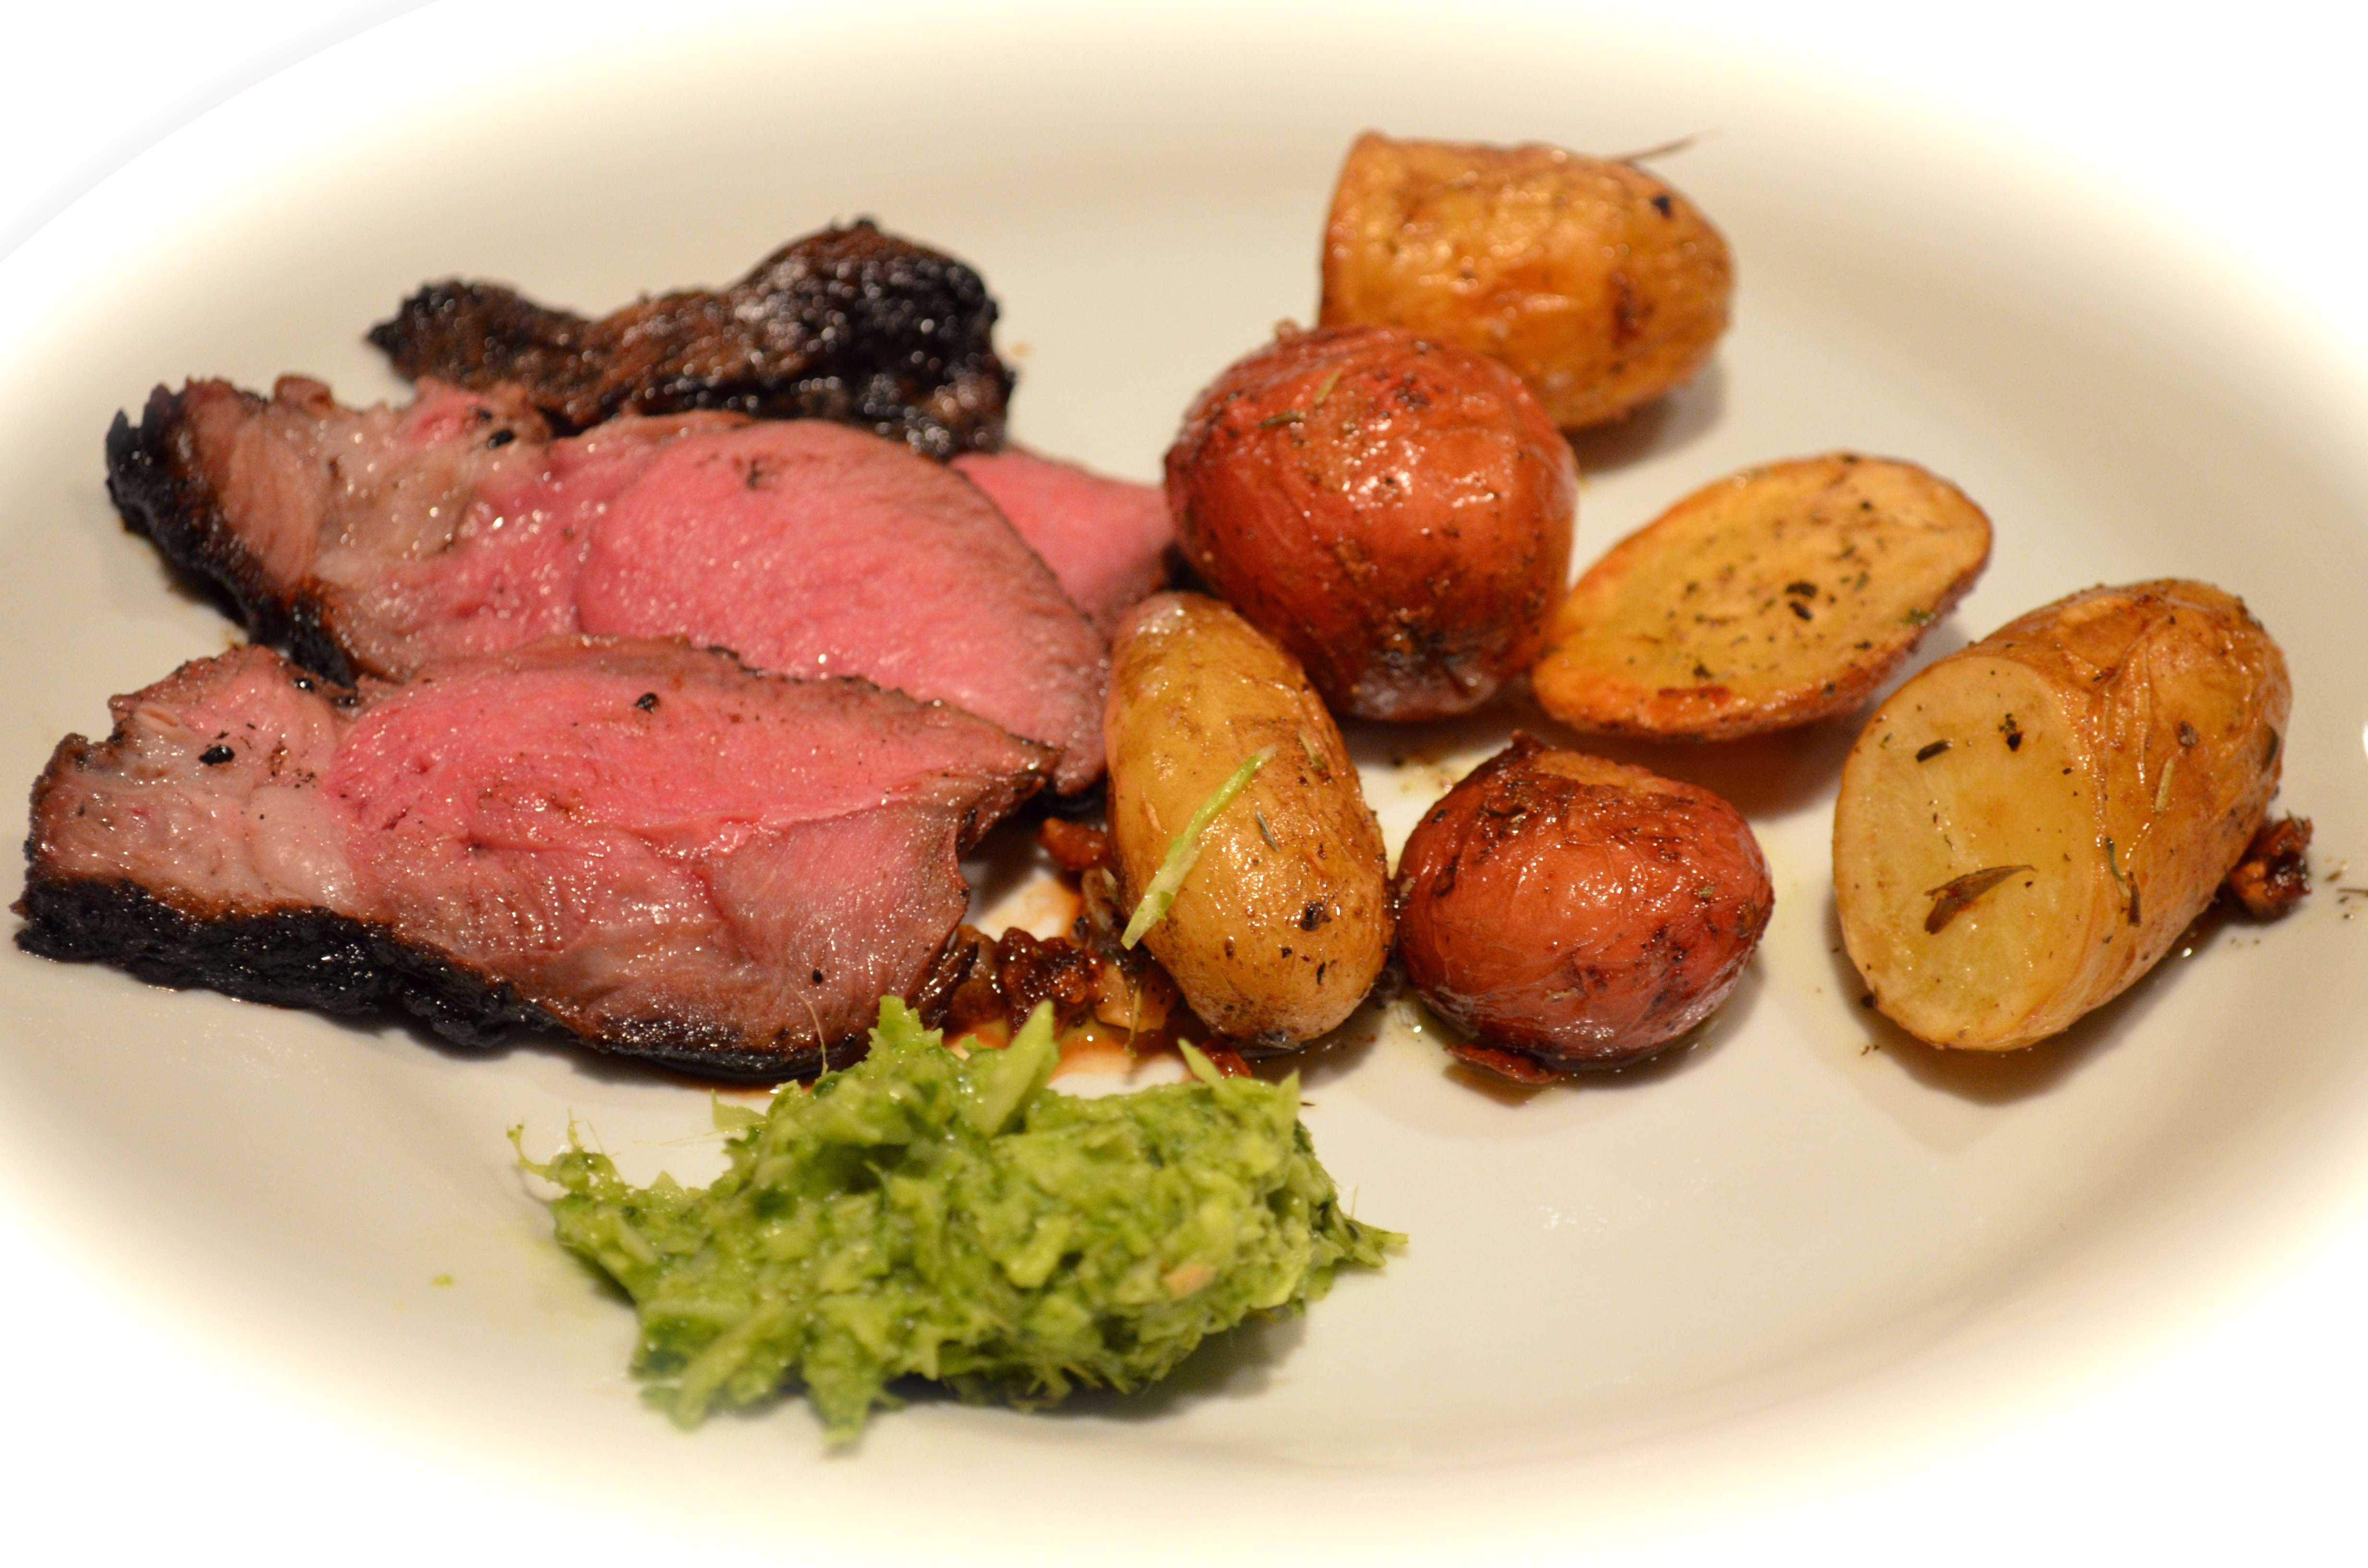 Grilled Lemon And Garlic Leg Of Lamb With Coriander Chutney And Roast ...